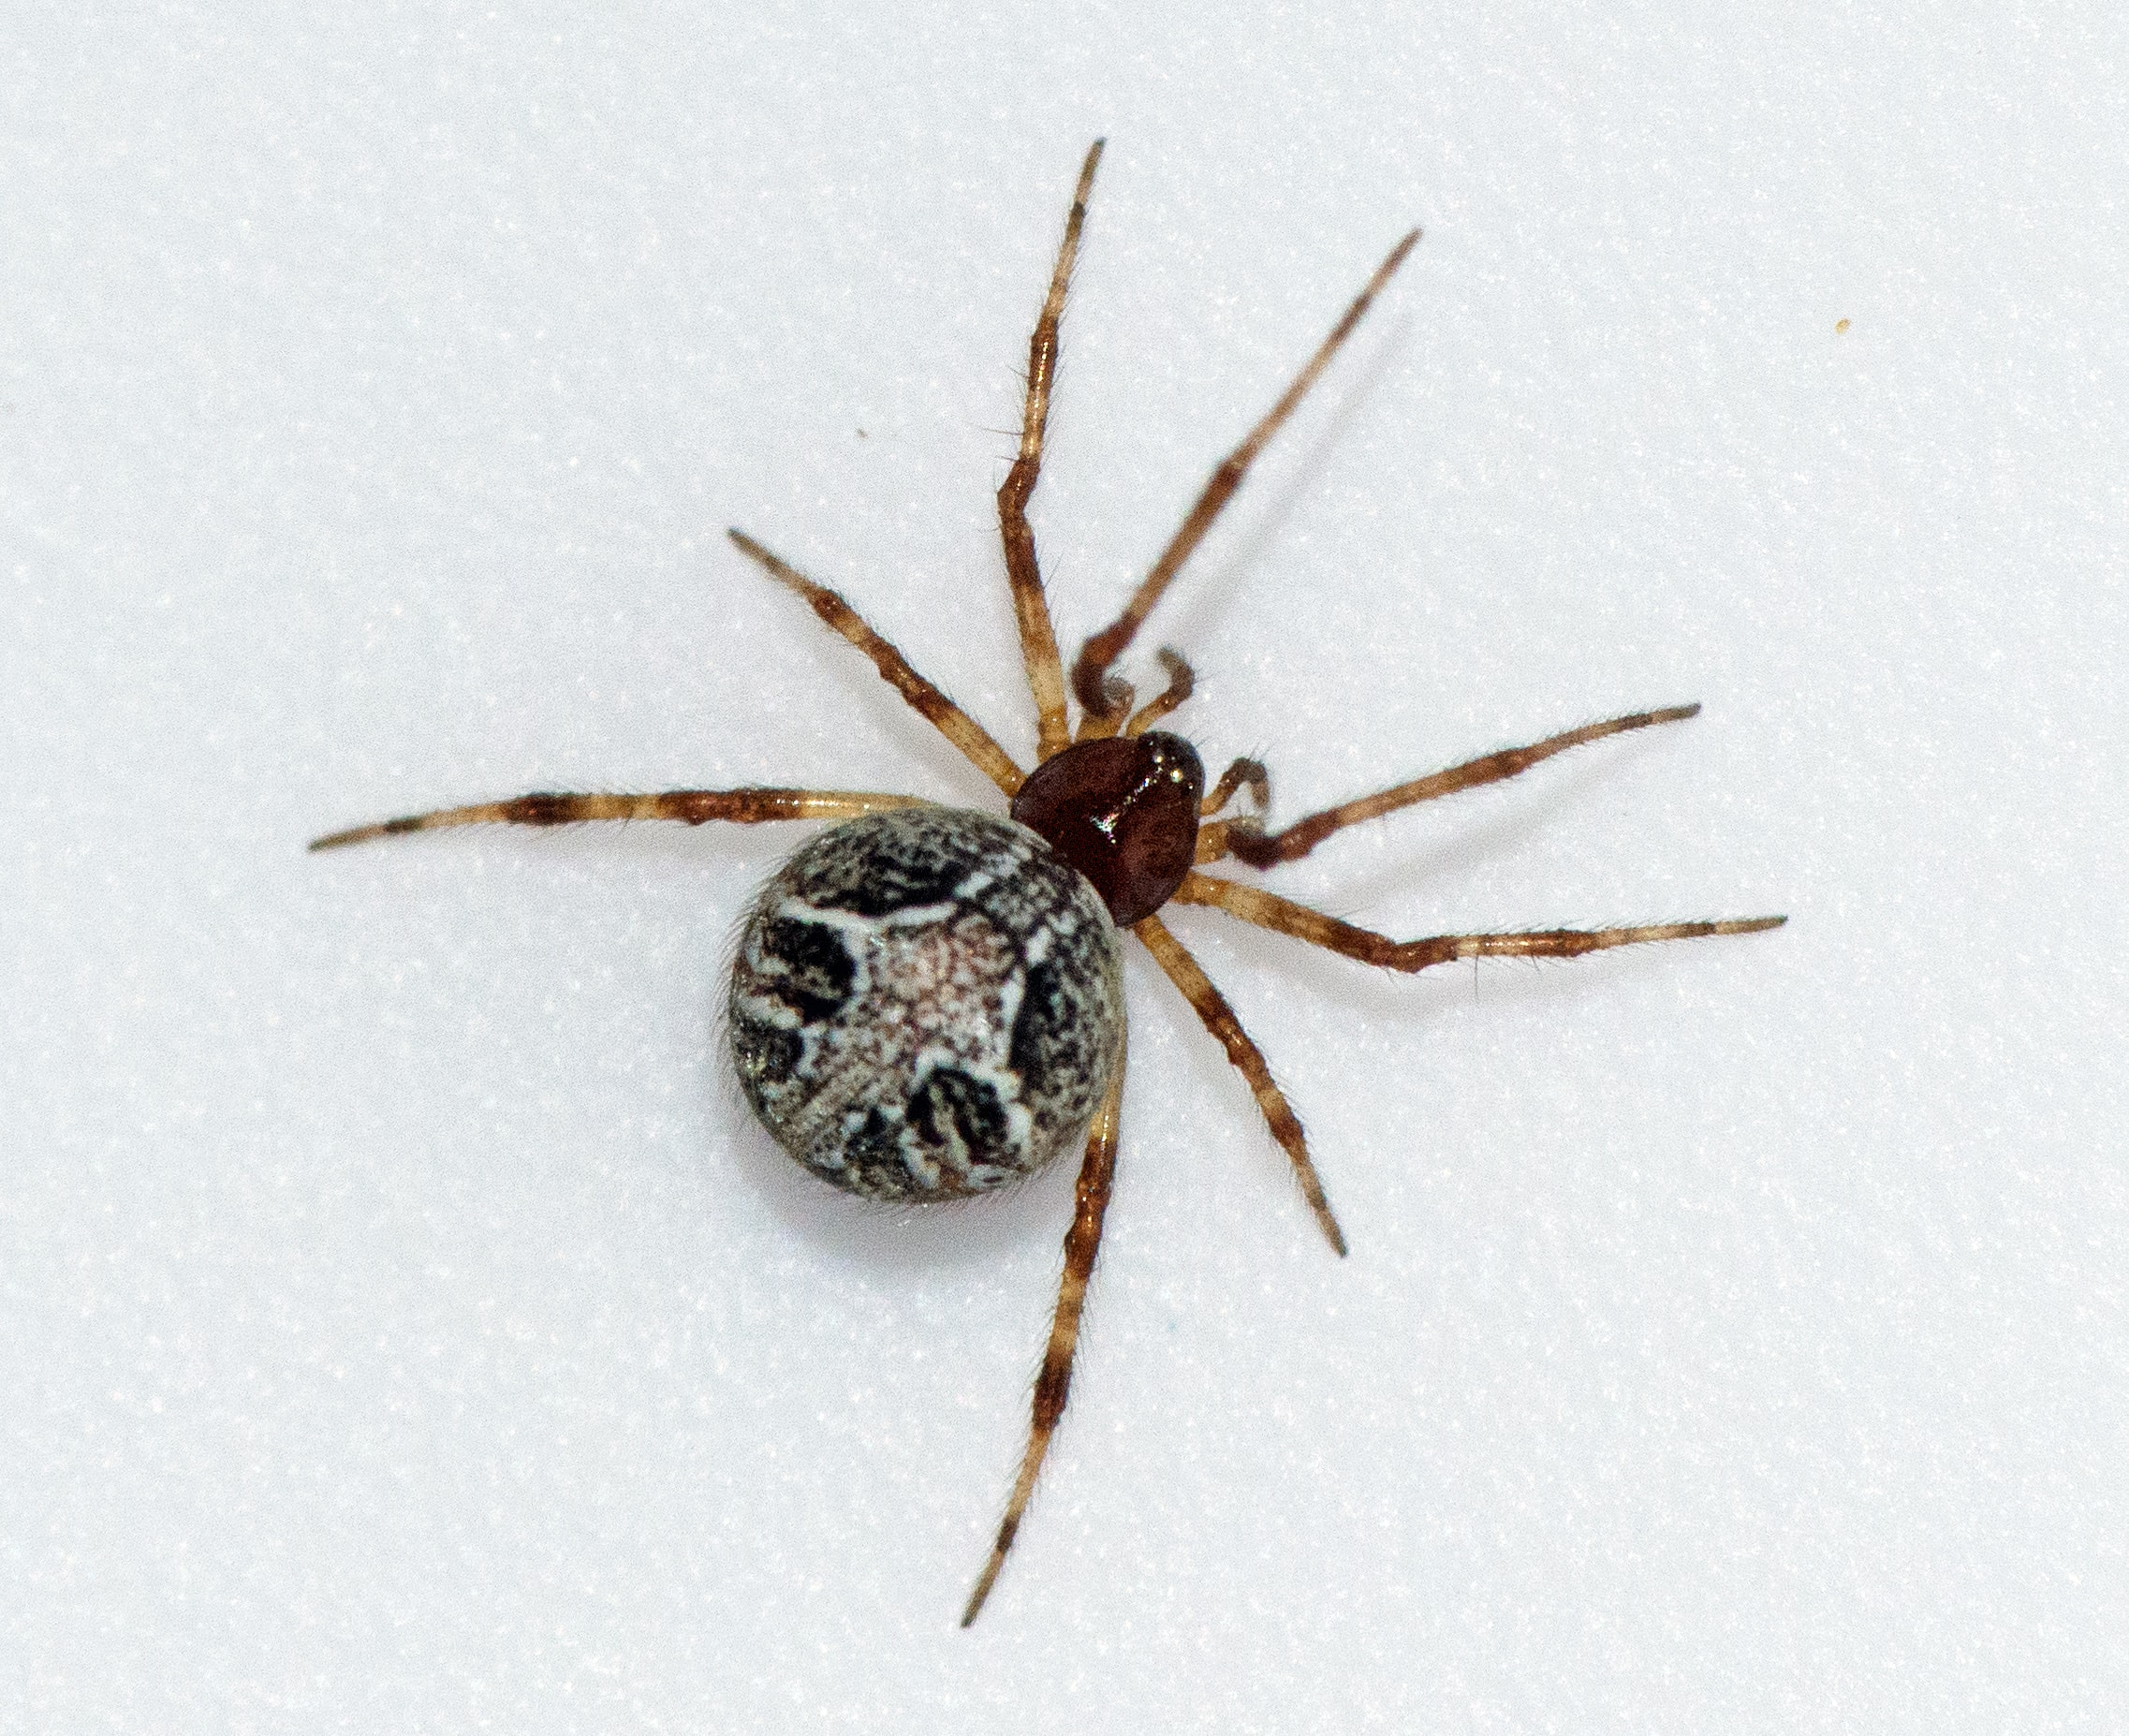 Picture of Theridion melanurum - Female - Dorsal